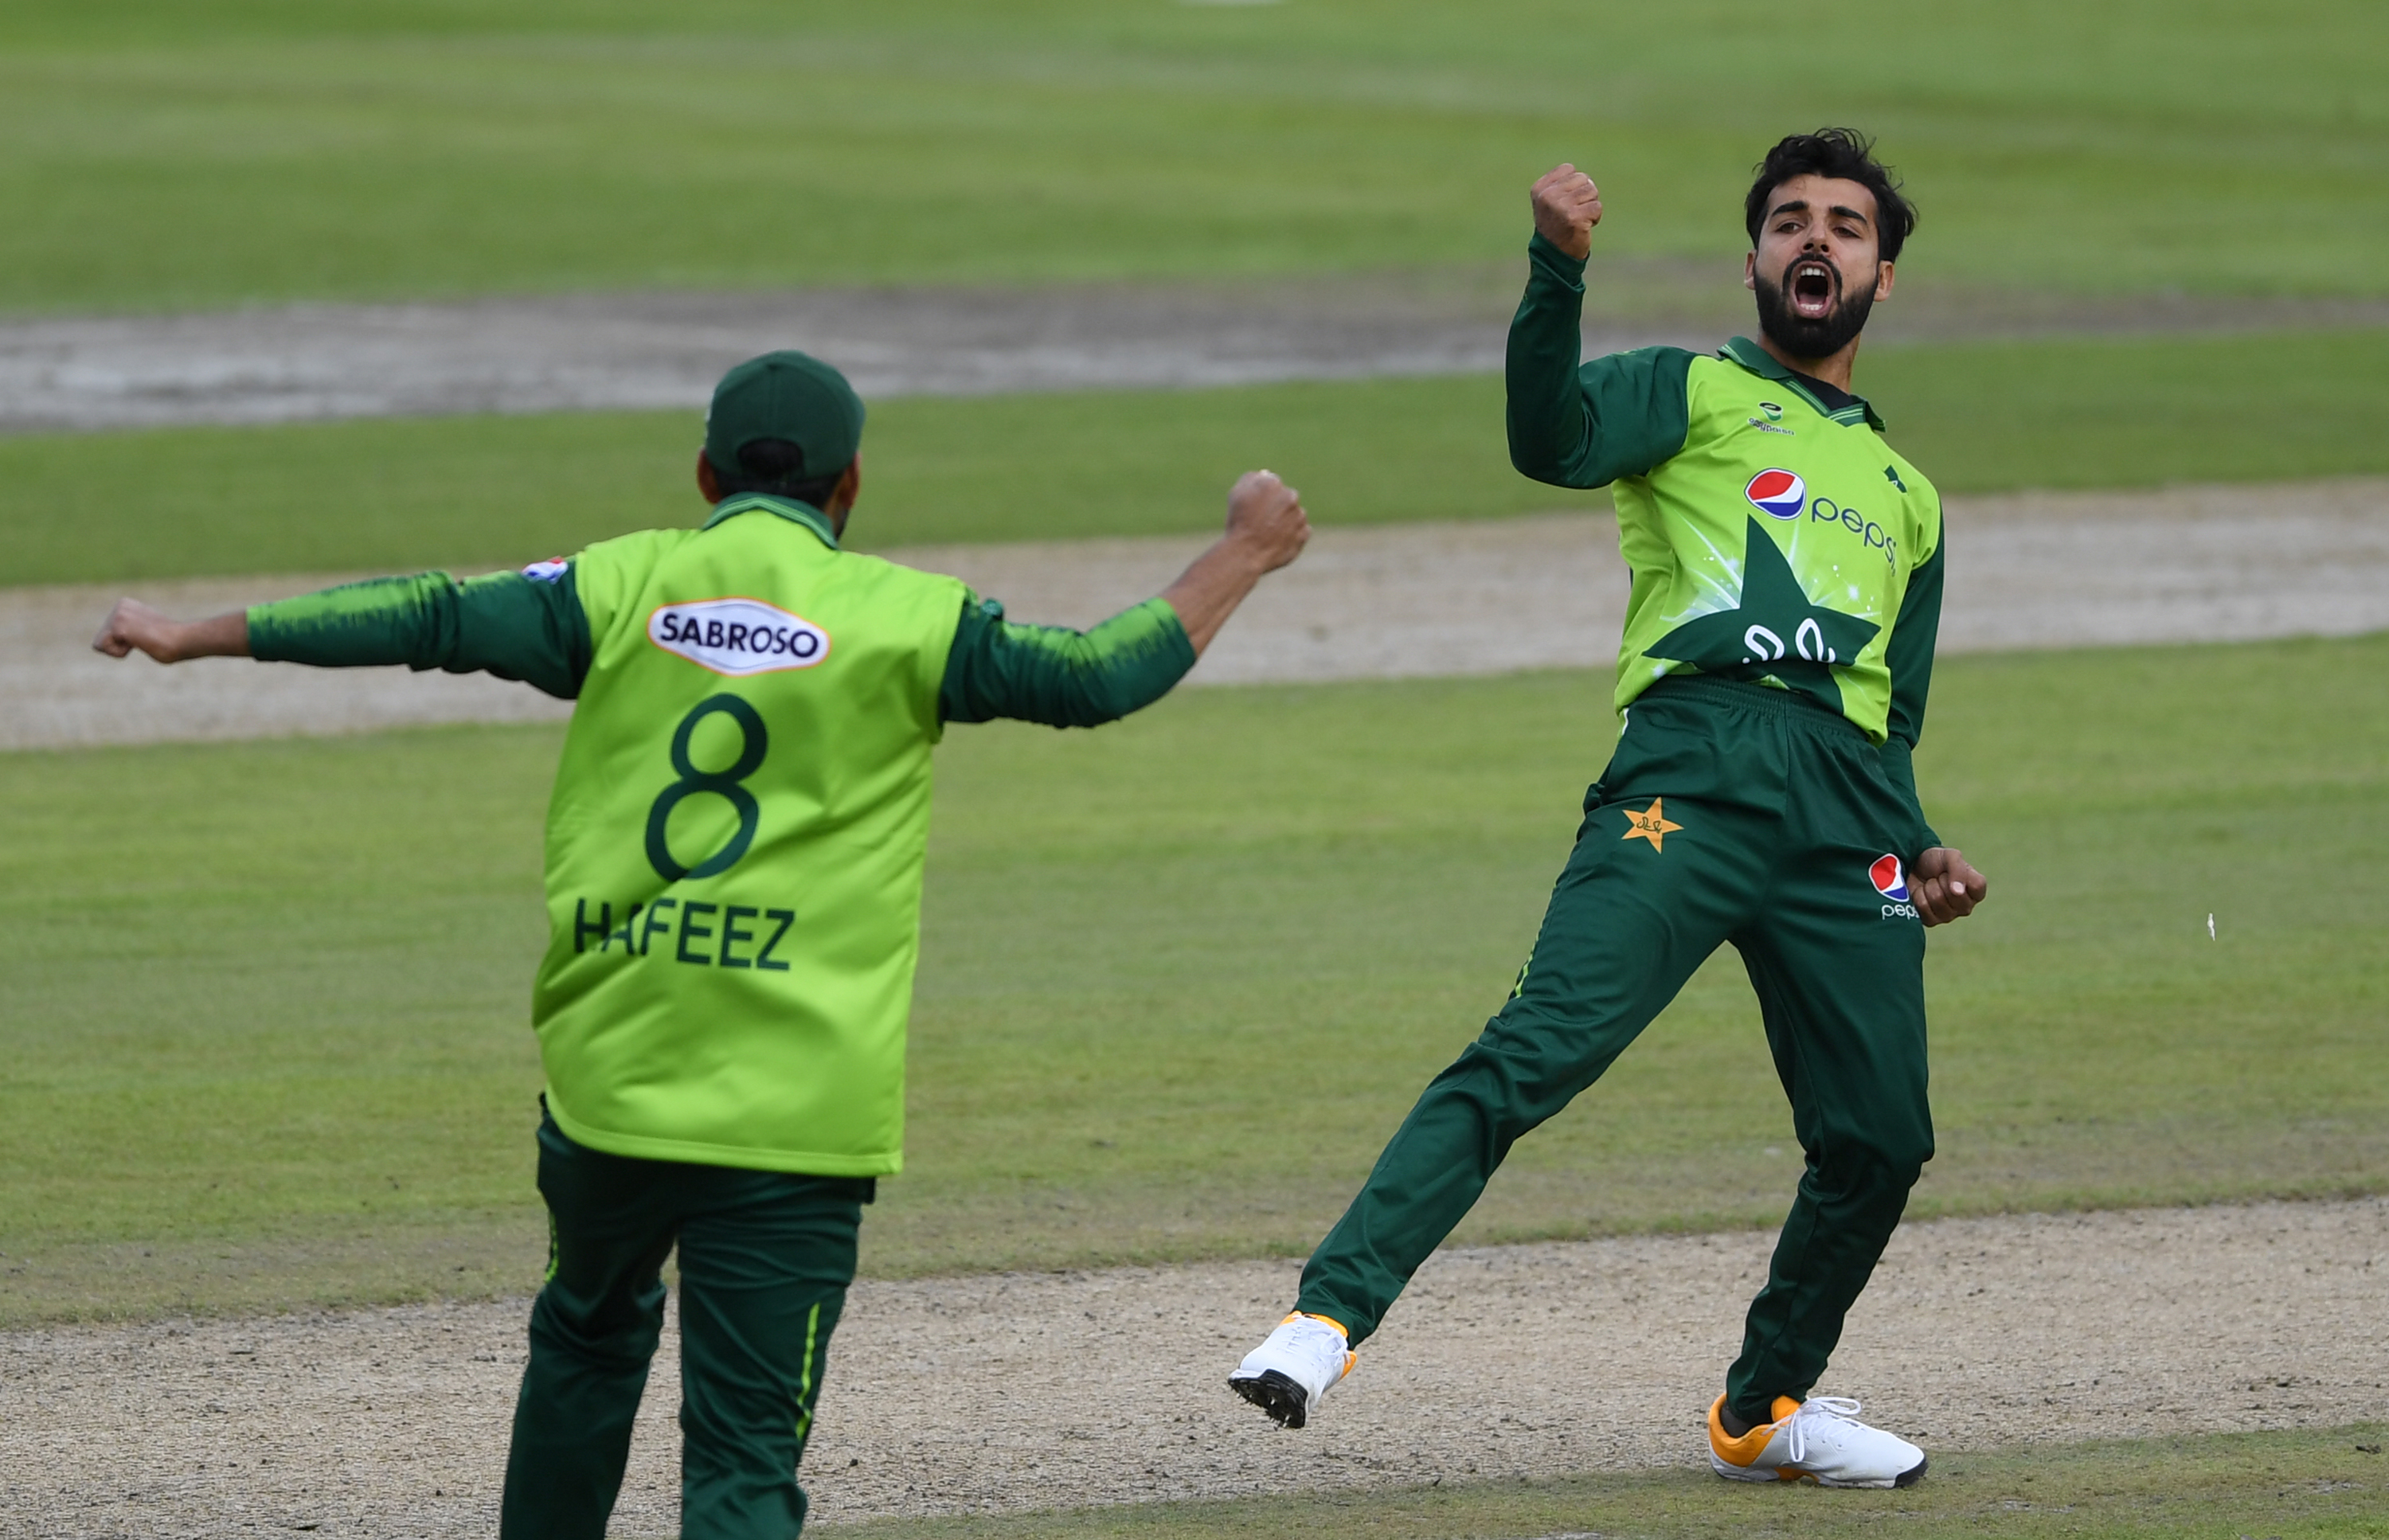 Shadab, Hafeez return to T20I mix as Pakistan name squads for South Africa, Zimbabwe tours - International Cricket Council